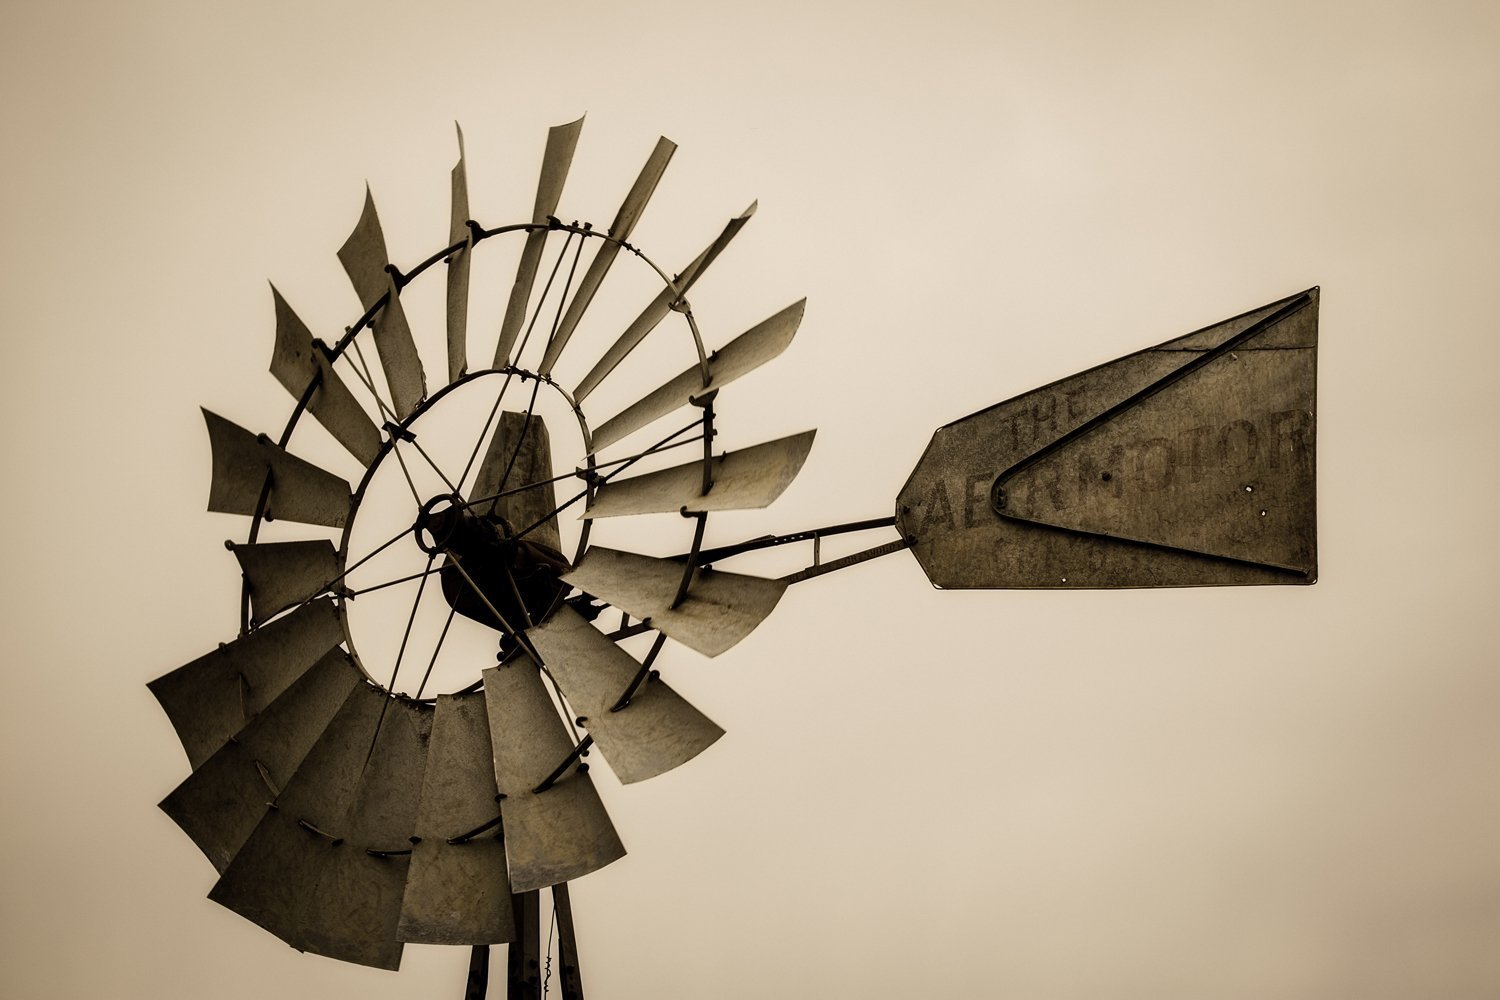 Windmill Fine Art Print - Sepia Toned Photograph of Windmill Head Farm Decor Country Wall Art 5x7 to 30x45